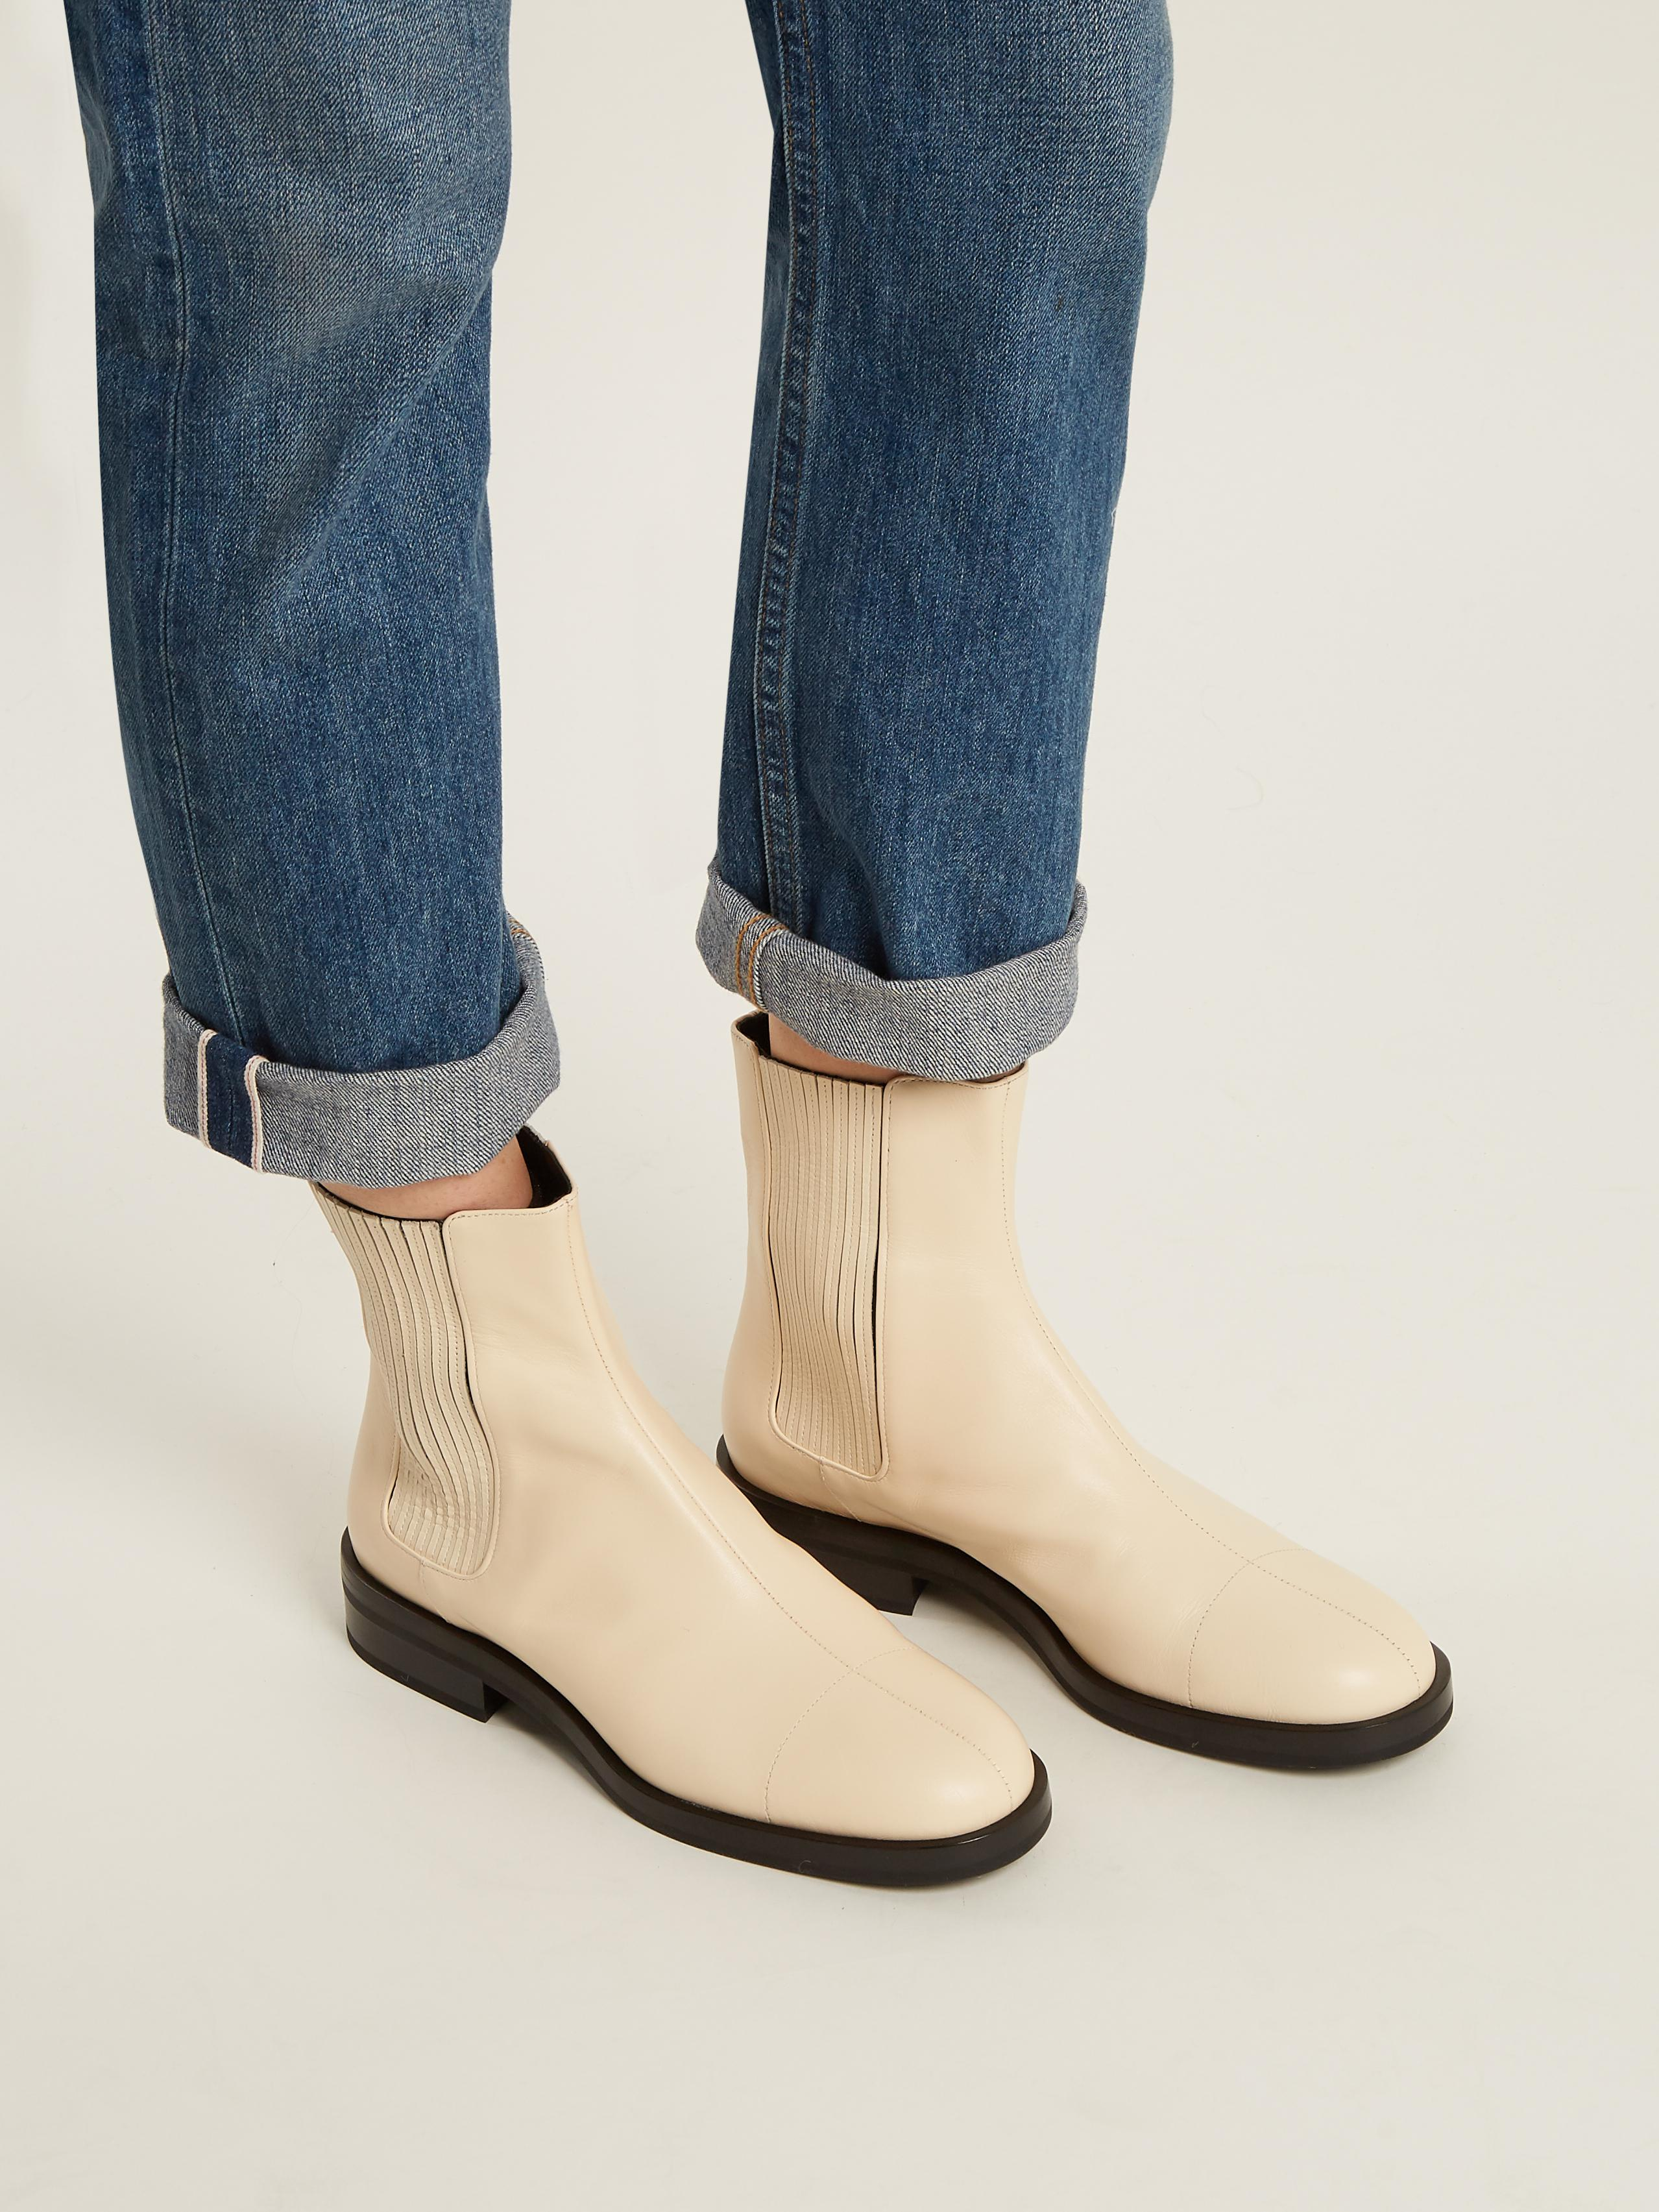 Jil Sander Contrast-sole Leather Ankle Boots in Cream (Natural)